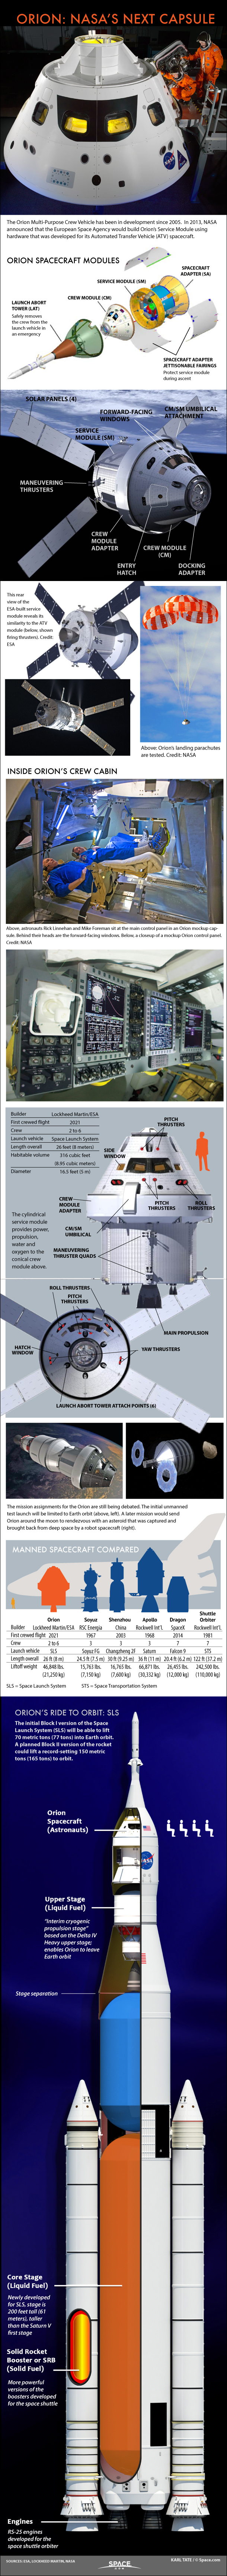 How NASA's Multi-Purpose Crew Vehicle Stacks Up (Infographic)